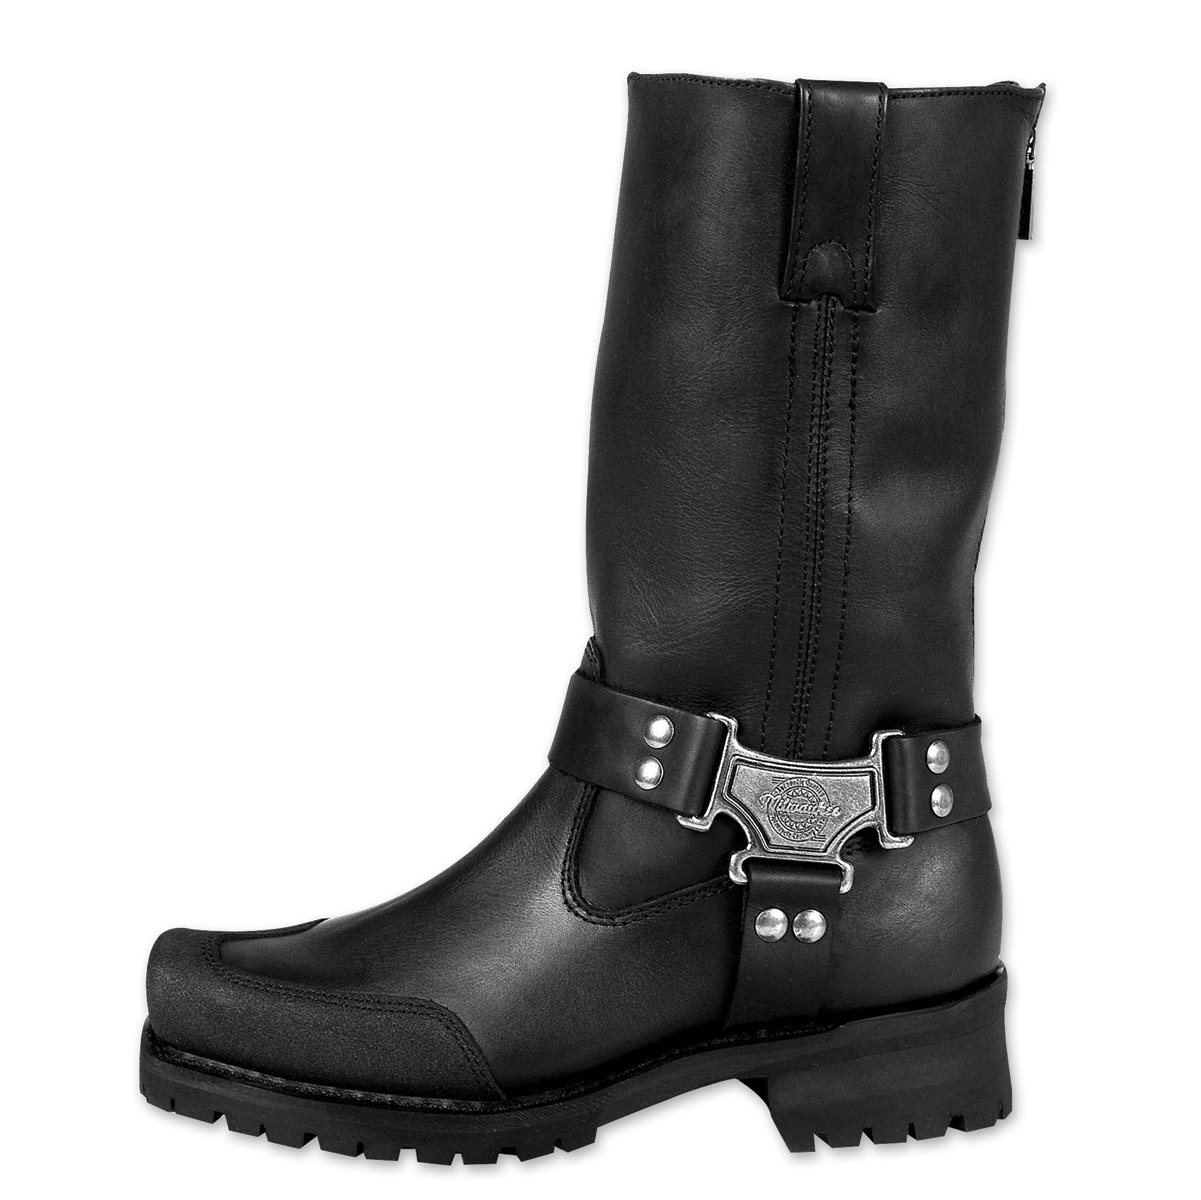 Milwaukee Motorcycle Clothing Co. Men's Drag Harness Tech Tuff Boots